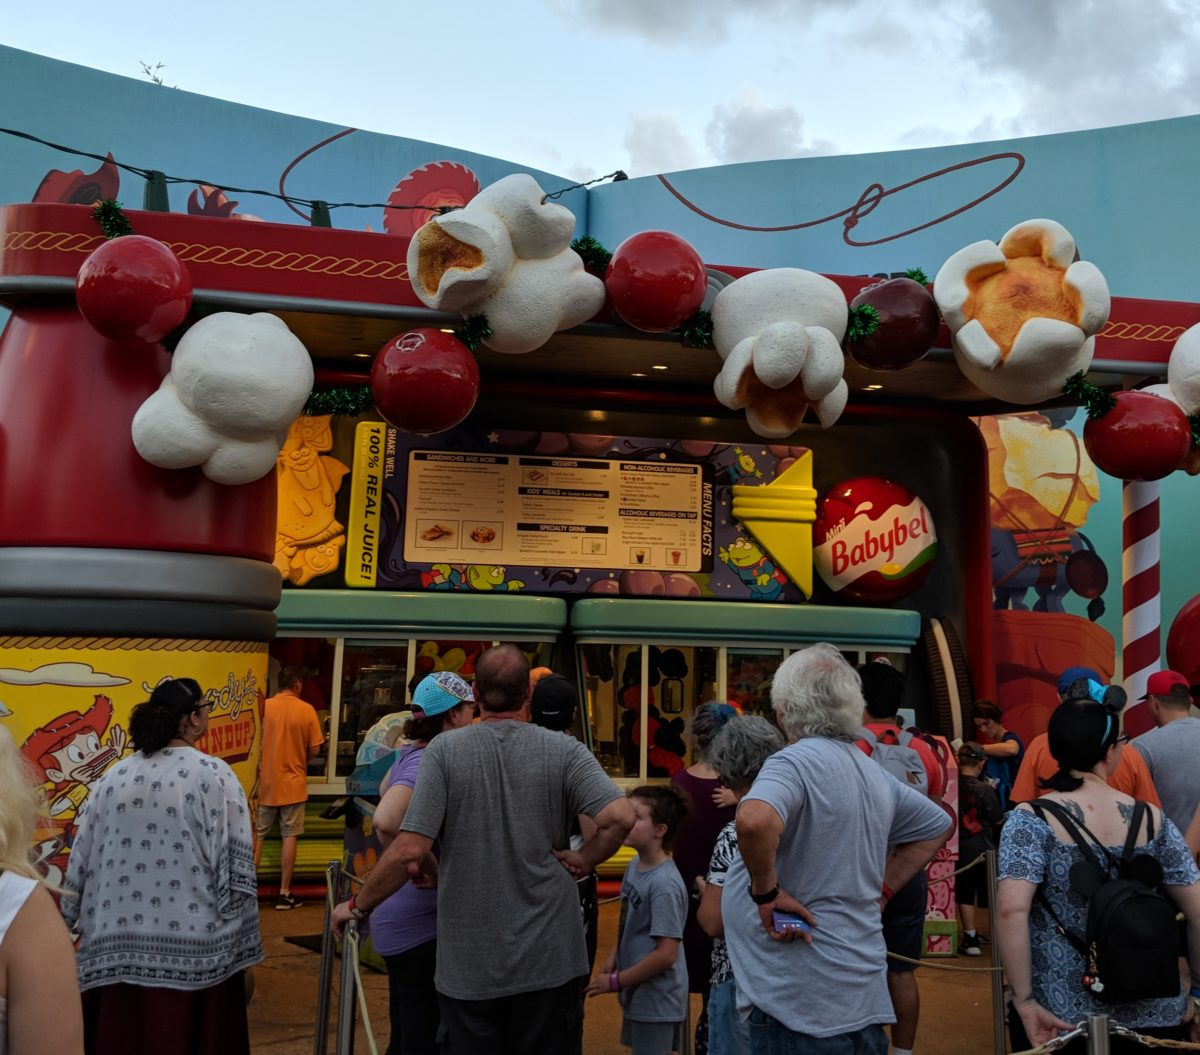 Eat breakfast at Walt Disney World Resort at Hollywood Studios by going to Woody's Lunch Box an outdoor restaurant in Toy Story Land